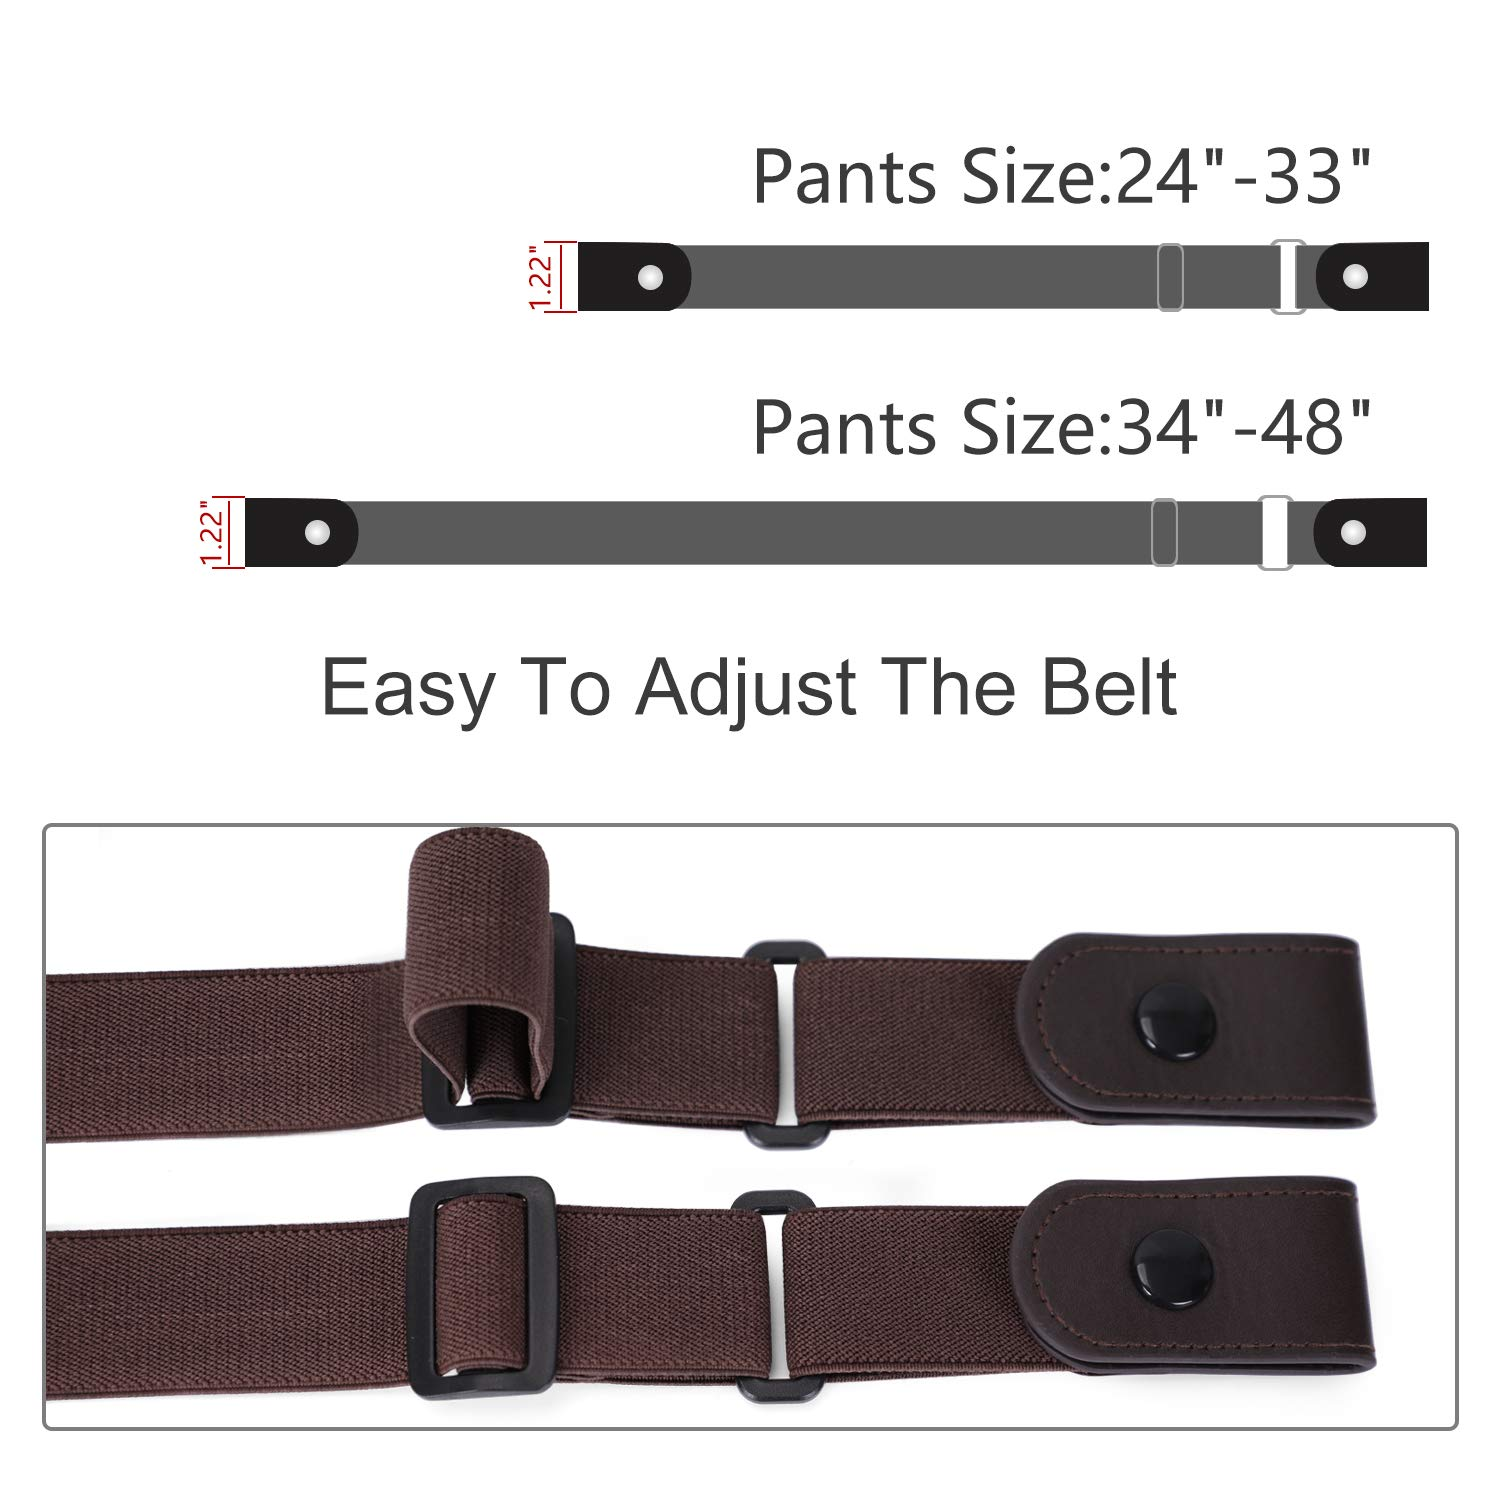 Nickle Free Metal Free Women No Buckle Invisible Stretch Belt For Jeans, Coffee, Large(Pants Size 34-48 Inches)